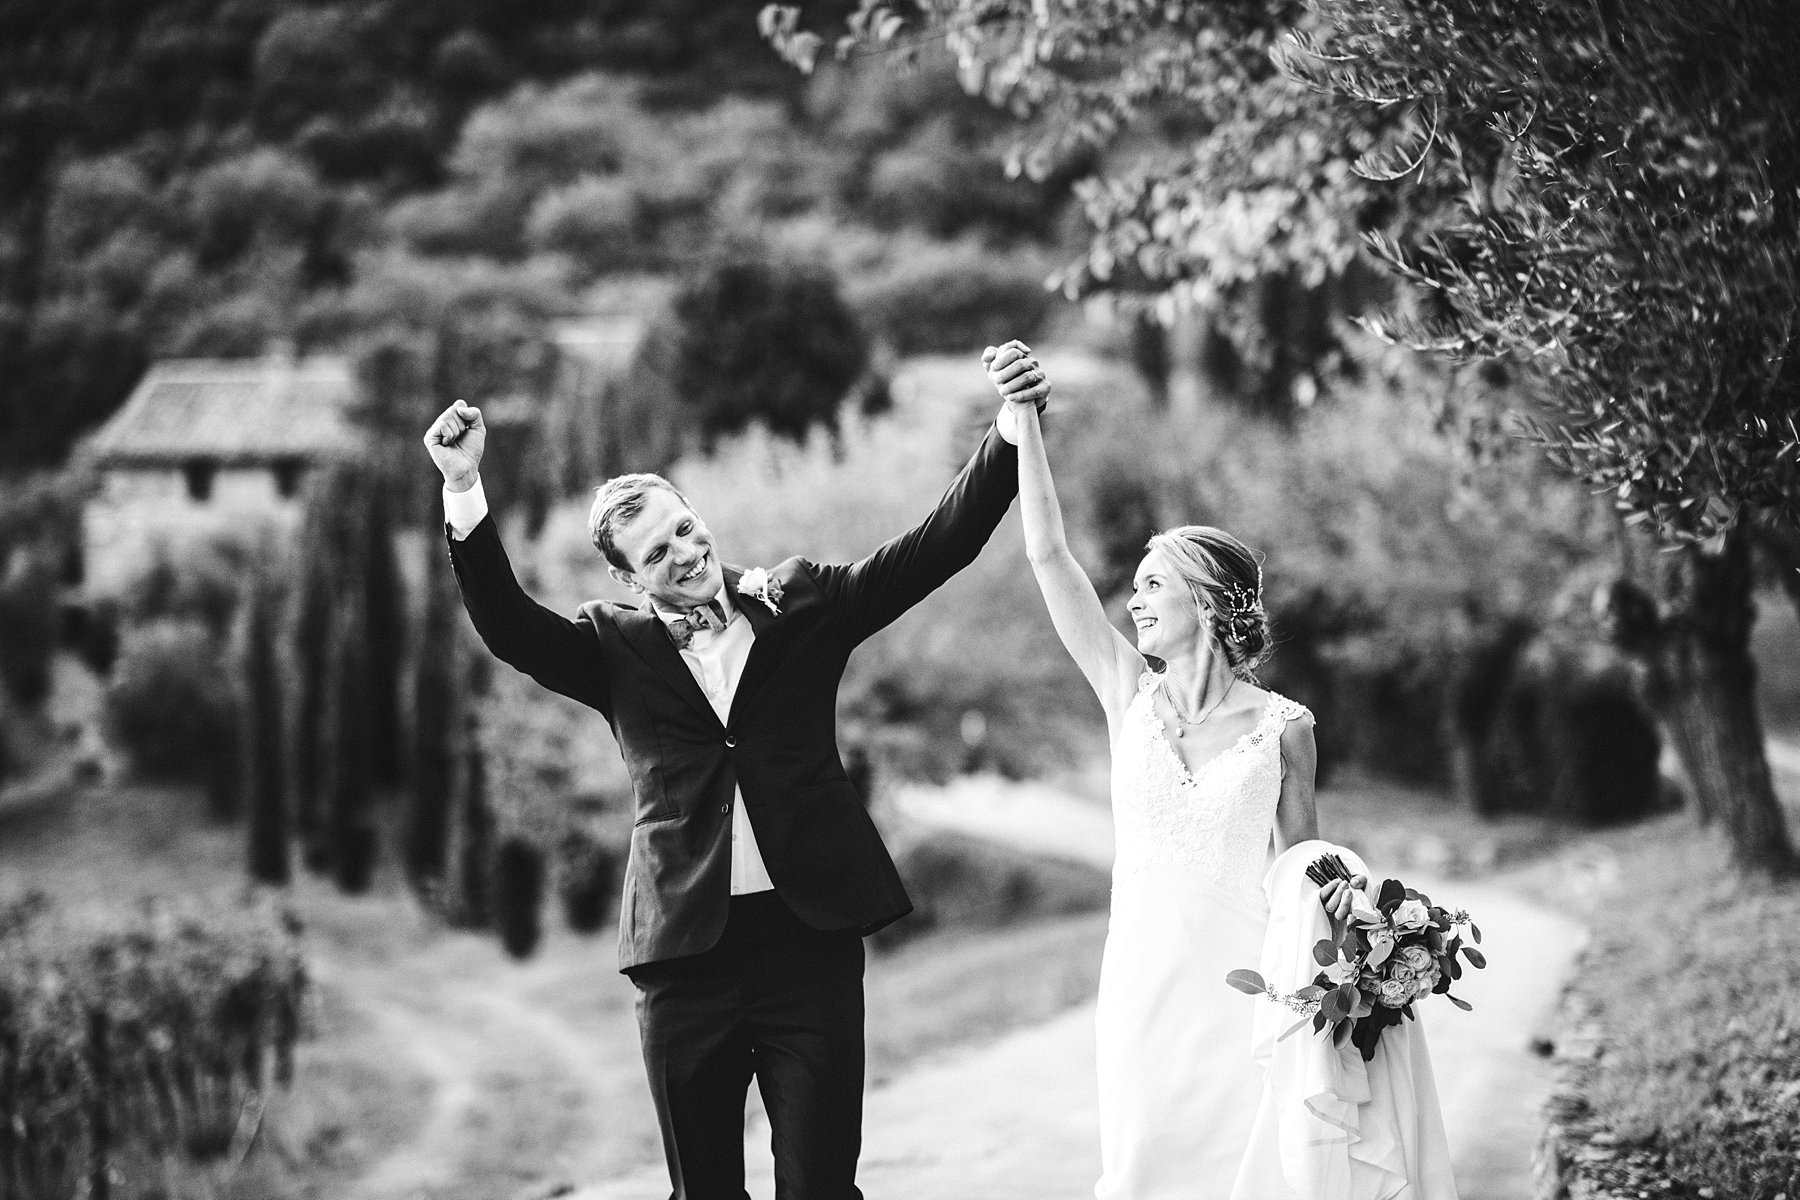 An unforgettable international wedding. Elegant Australian couple reportage wedding photo around the property of Villa Monte Solare, a historic residence tucked in the countryside among rolling hills. The settings were countryside landscapes with cypress lines, olive groves and a stunning wall covered in red ivy leaves